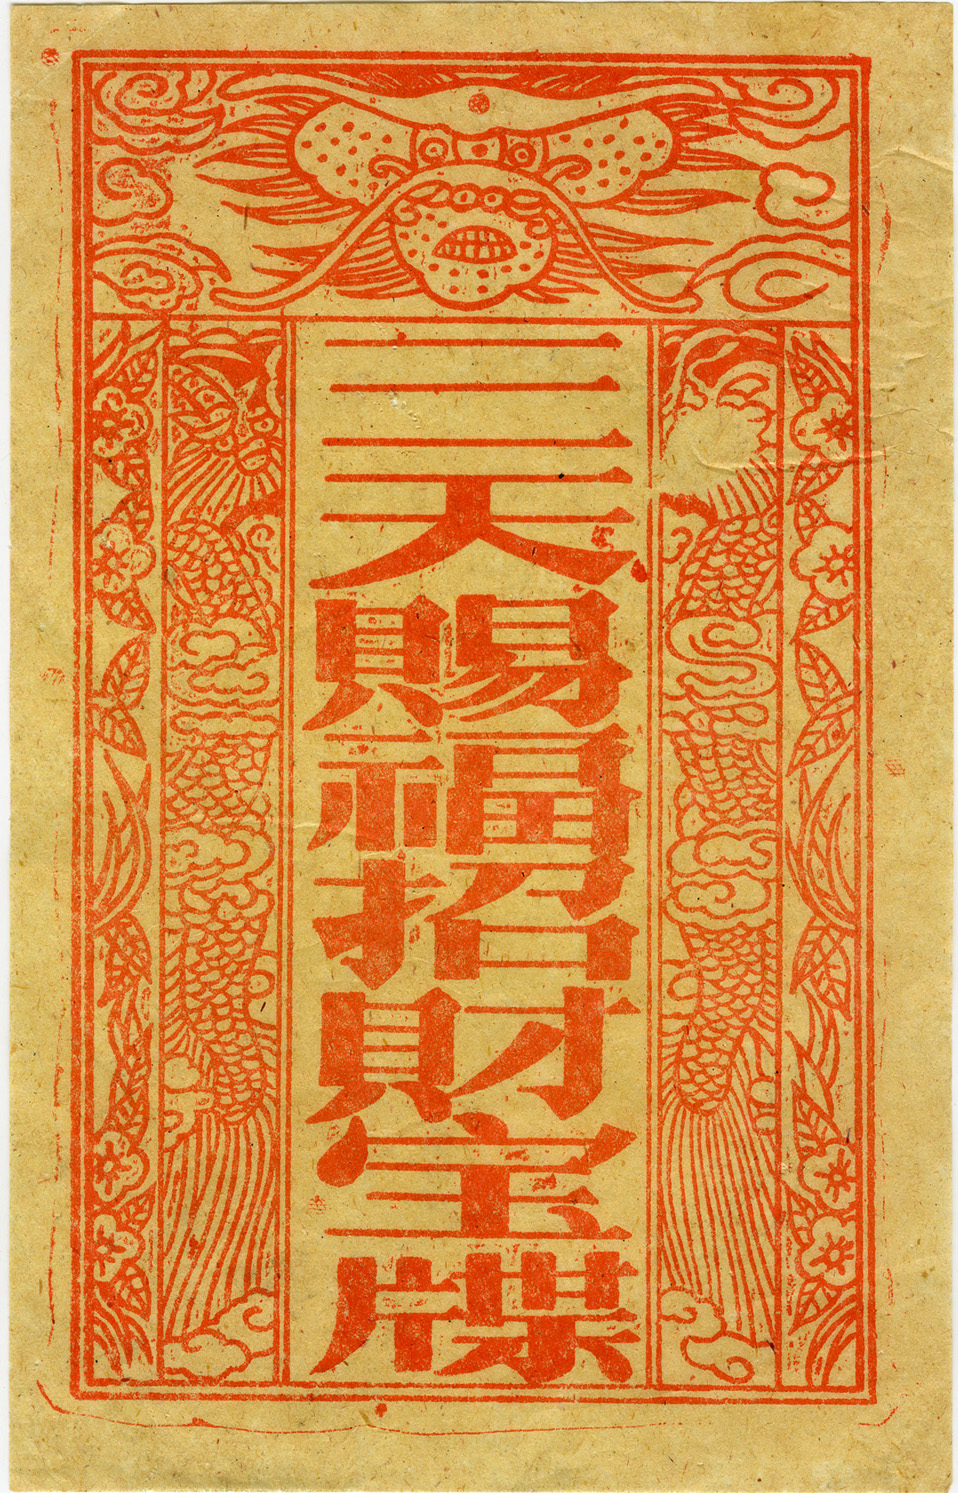 Depiction of Chinese funeral money